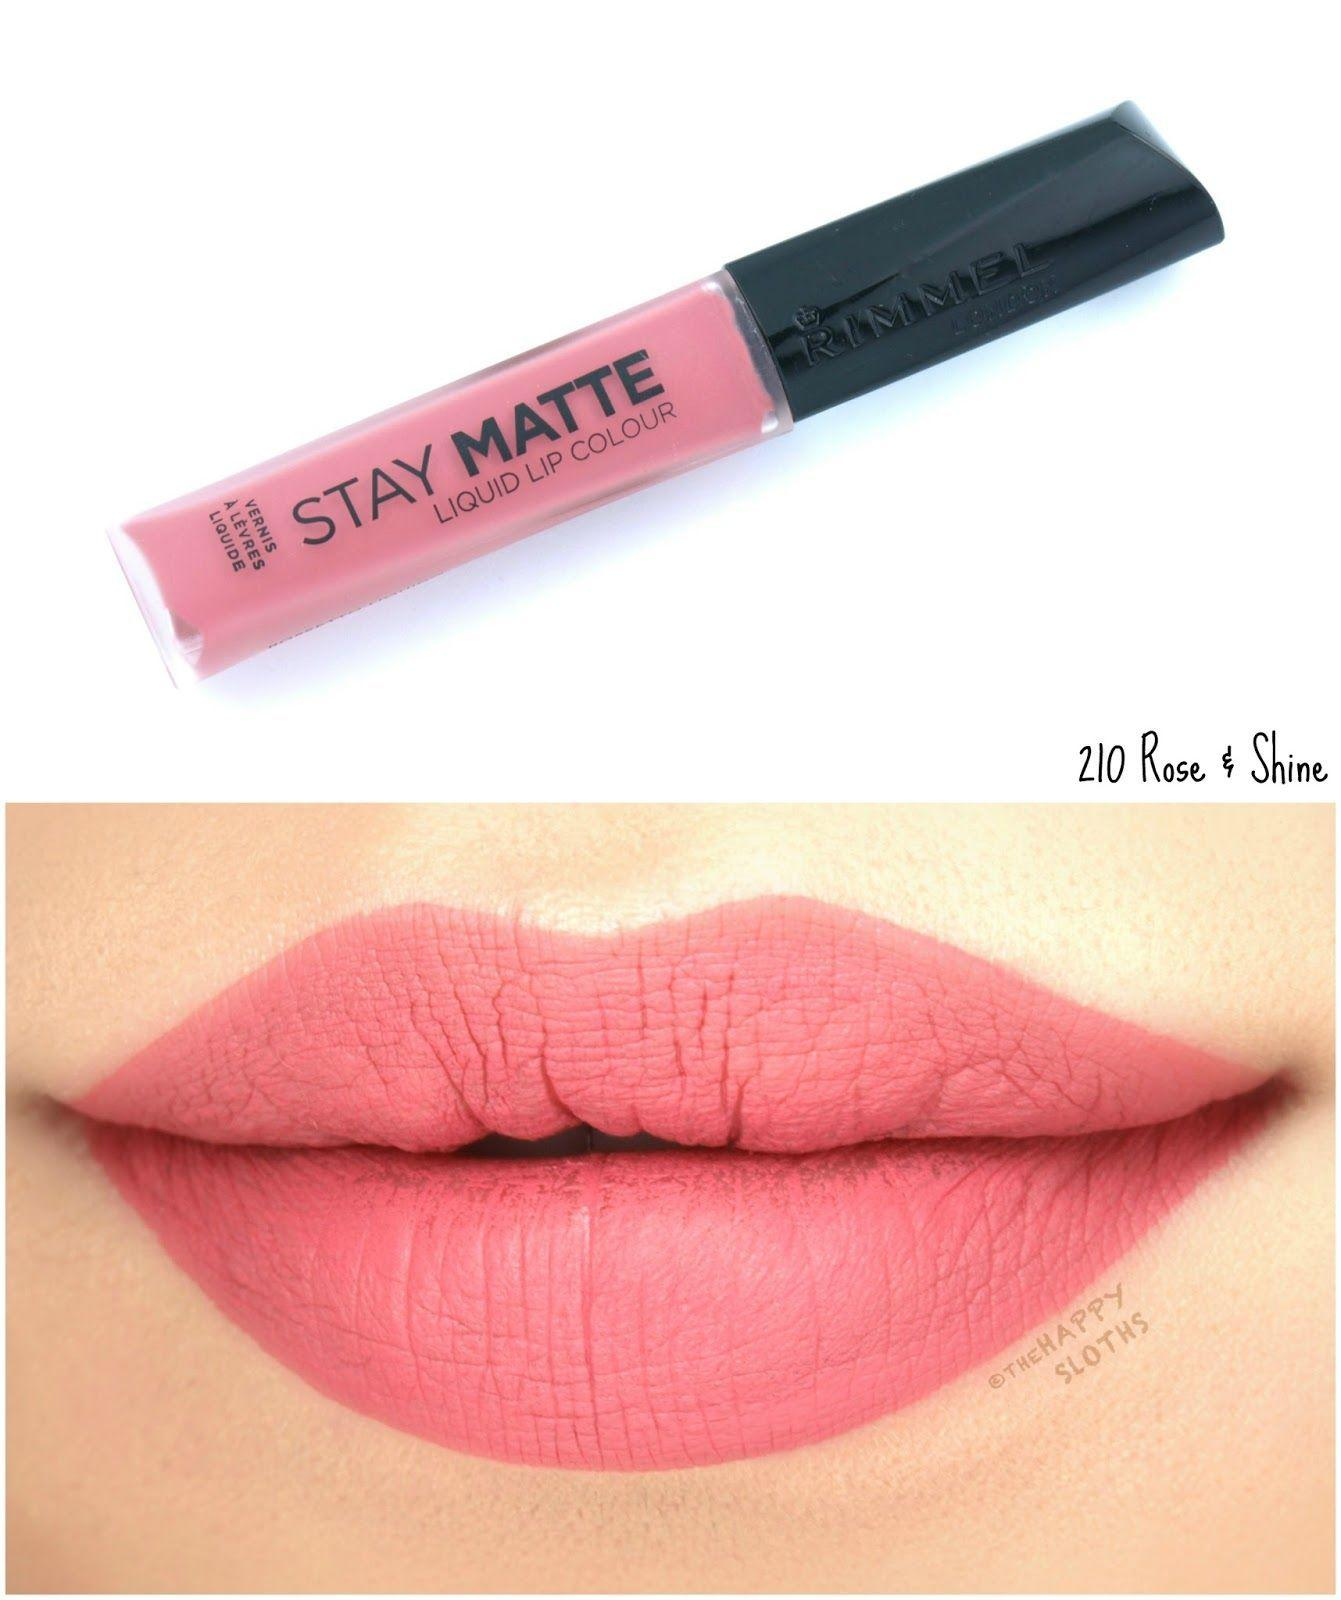 The Best Rimmel London Stay Matte Liquid Lip Colour Review And Pictures